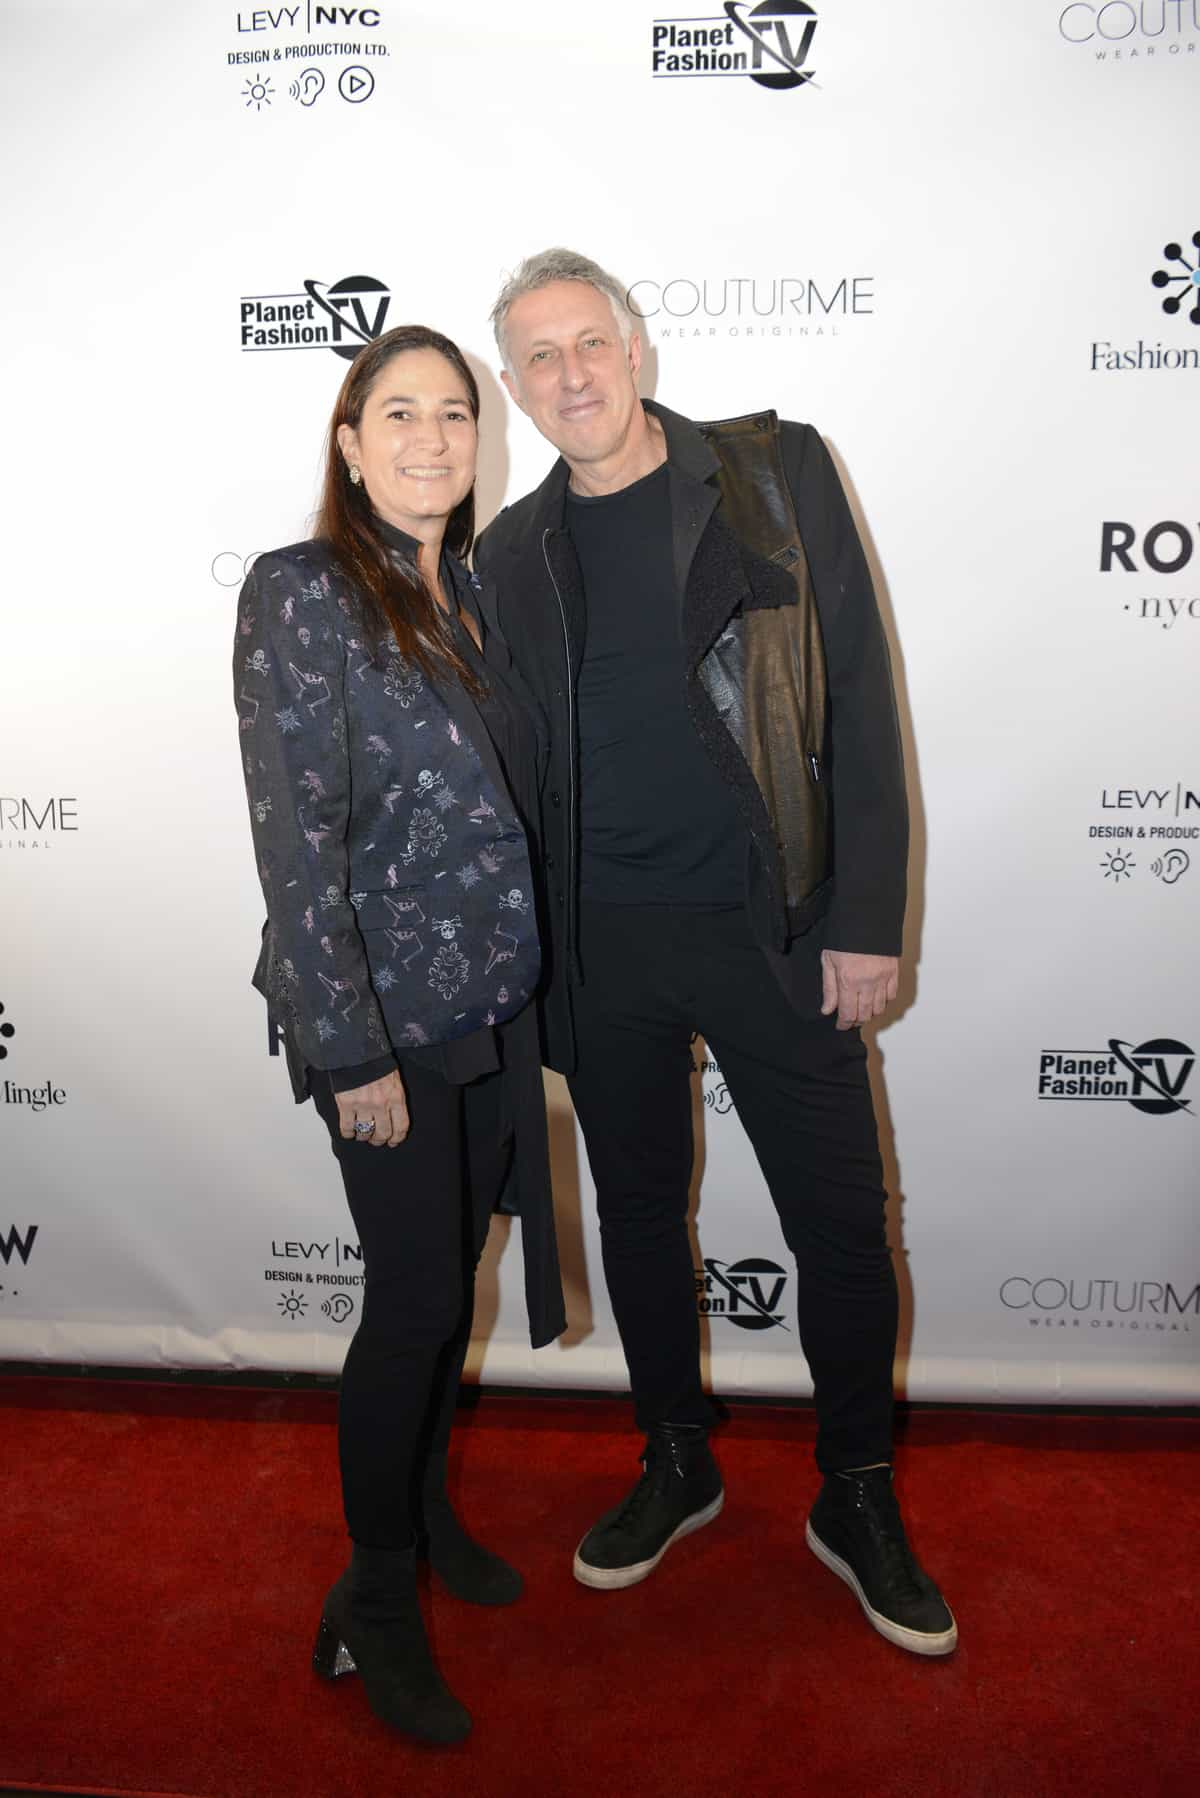 Ira and Helene from Levy NYC on the red carpet of Fashion Mingle's NYFW networking party.